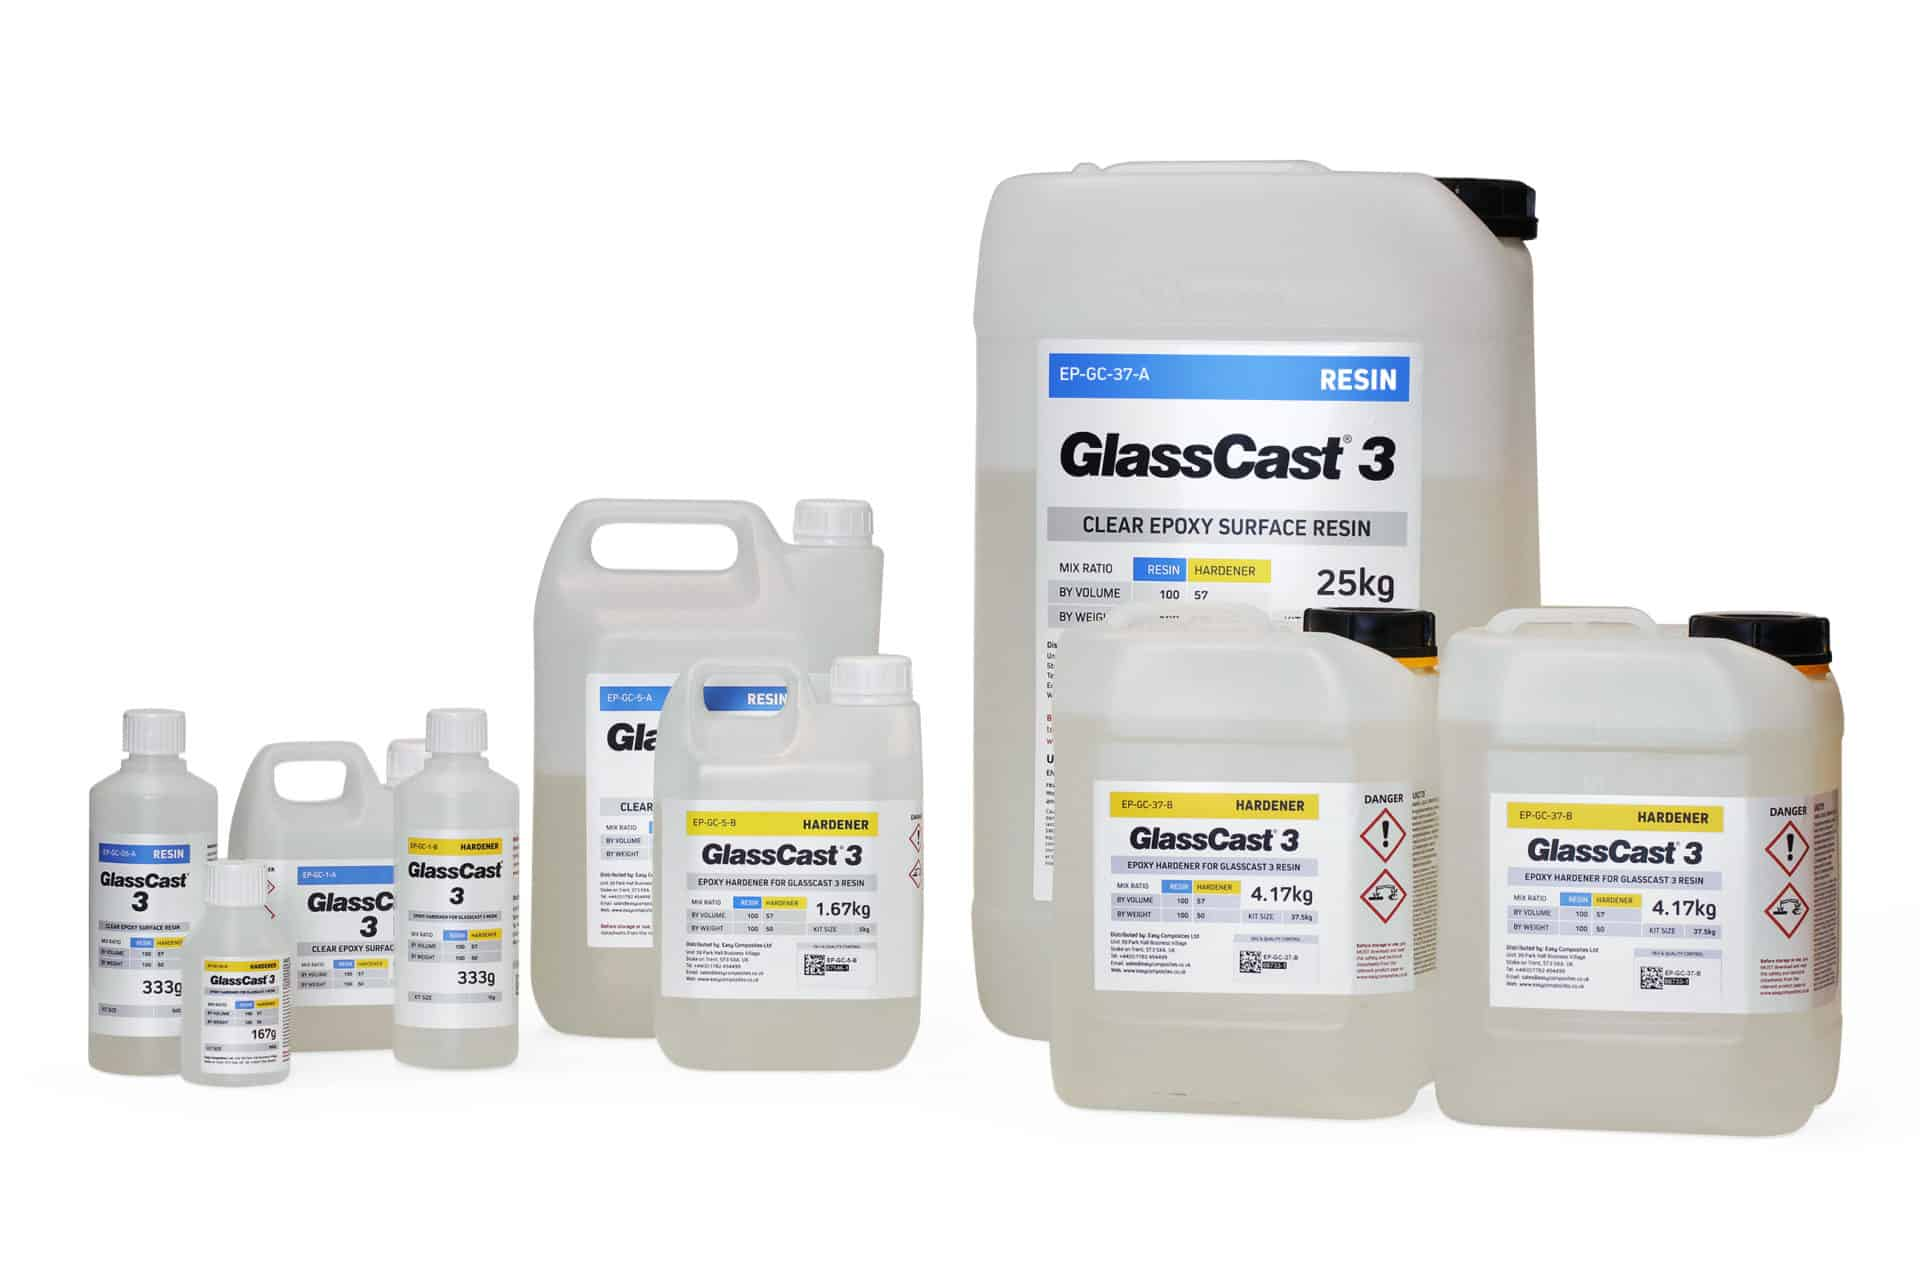 1Kg TOTALLY CLEAR CASTING RESIN FOR  PAPER WEIGHTS ENCAPSULATING PARTS